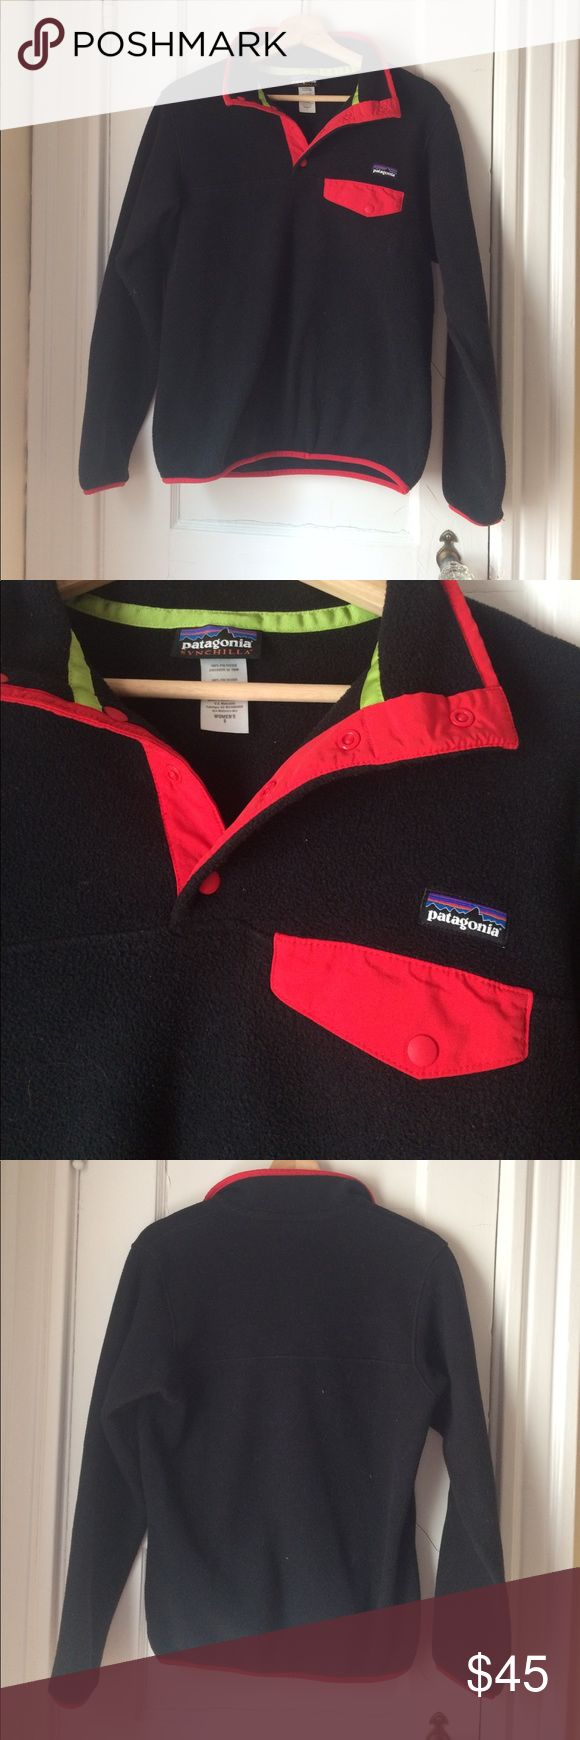 Patagonia Synchilla Snap-T Pullover Like new, black with red trim, size small Patagonia Sweaters